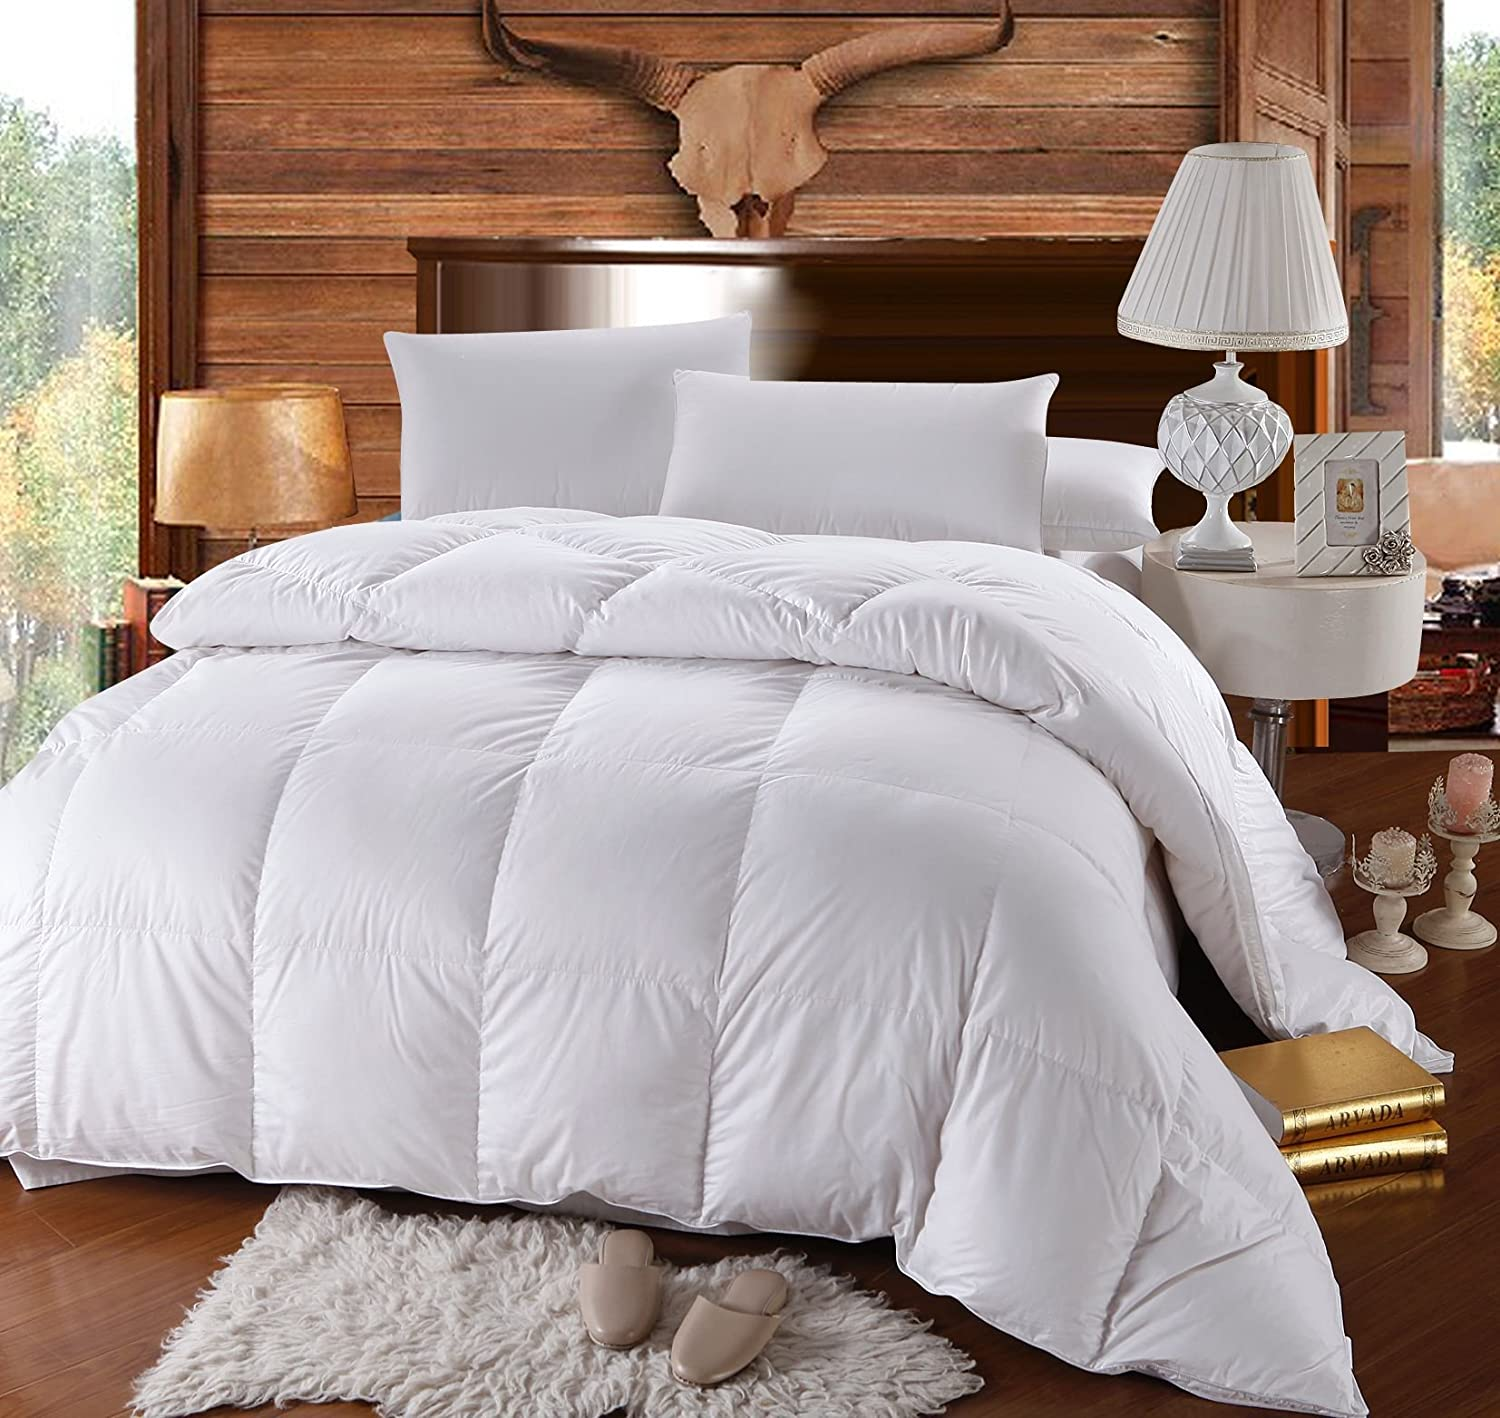 amazoncom californiaking size downcomforter threadcount siberiangoose down comforter  percent cotton  tc  fp  oz  solidwhite home . amazoncom californiaking size downcomforter threadcount